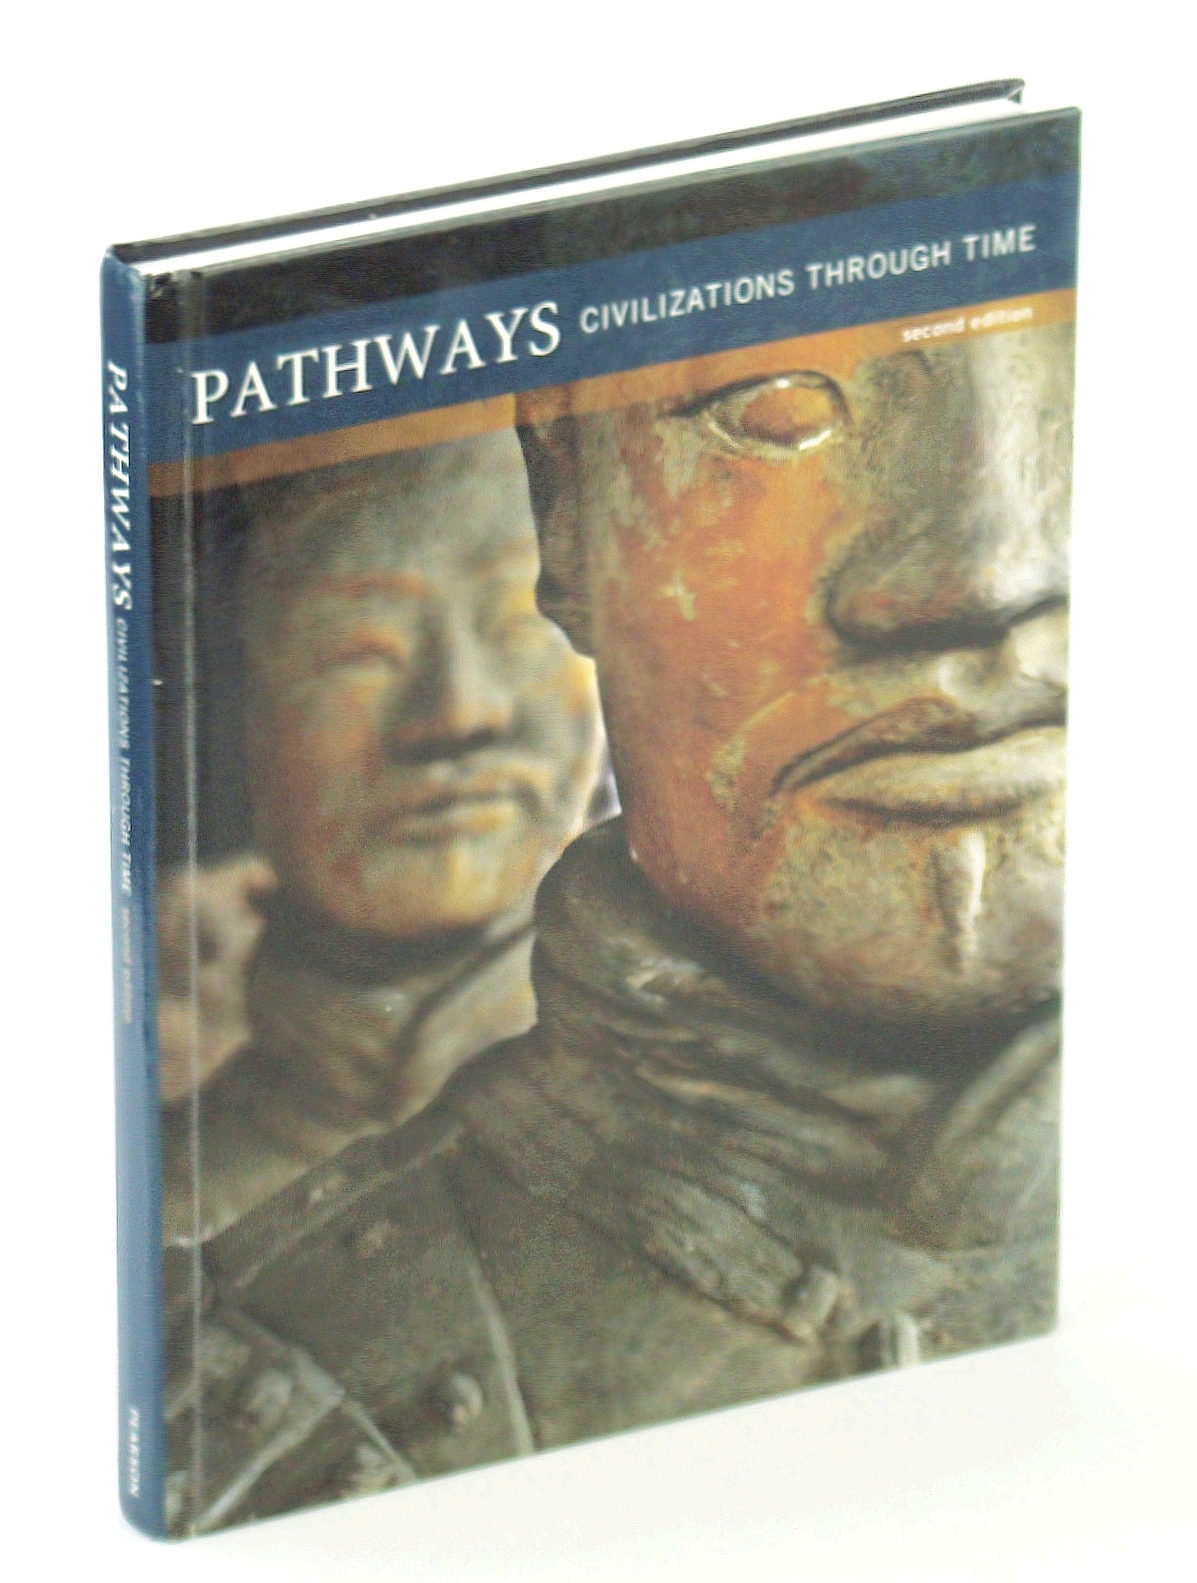 Image for Pathways: Civilizations Through Time 2nd Edition